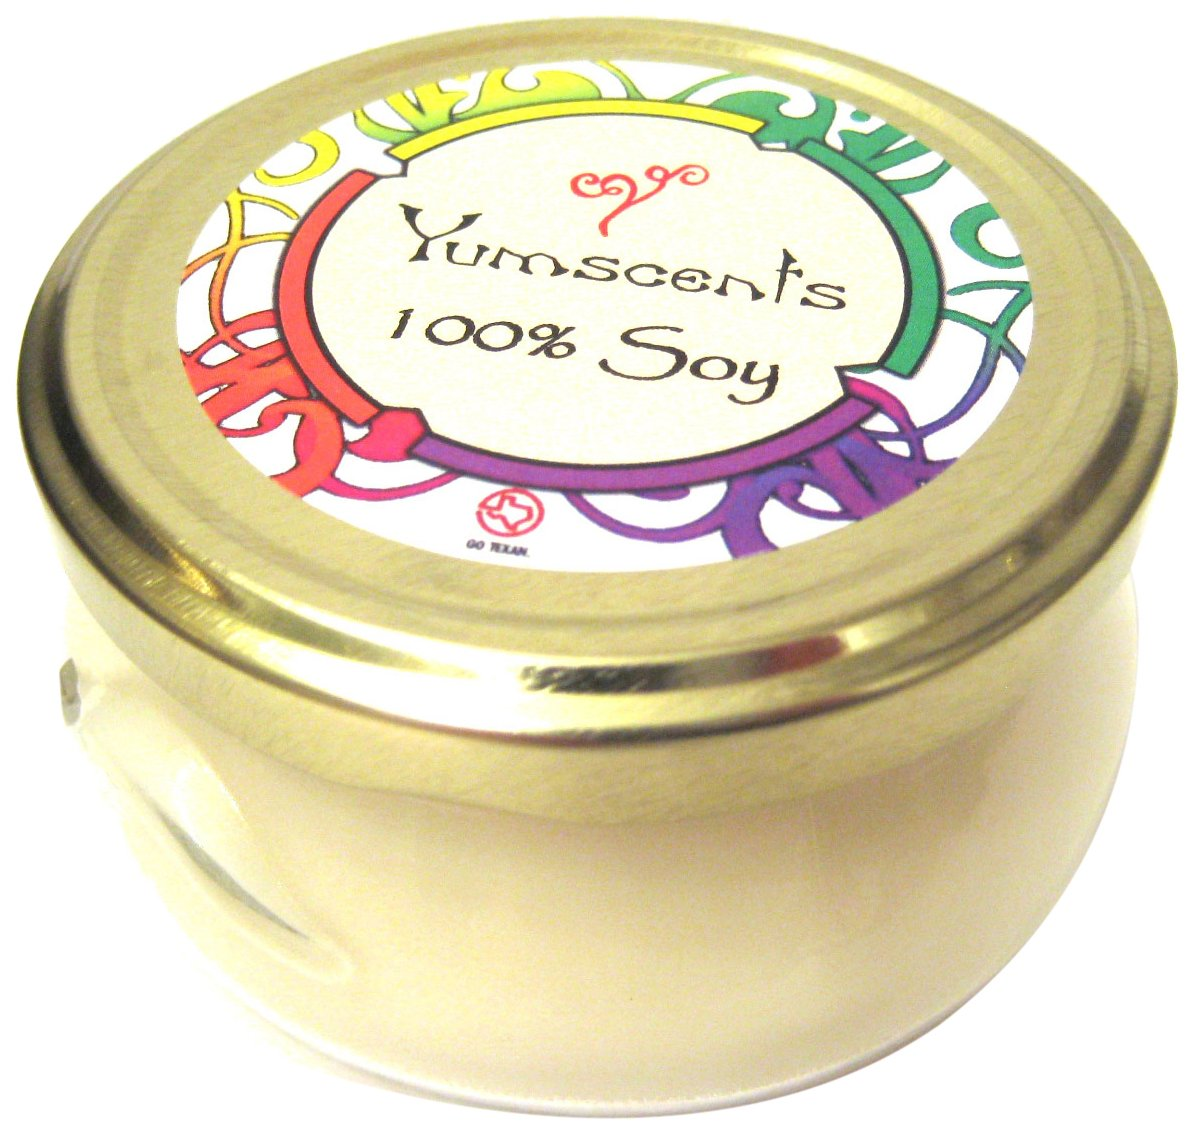 10-Ounce Peppermint Eucalyptus Yumscents Tureen Soy Candle